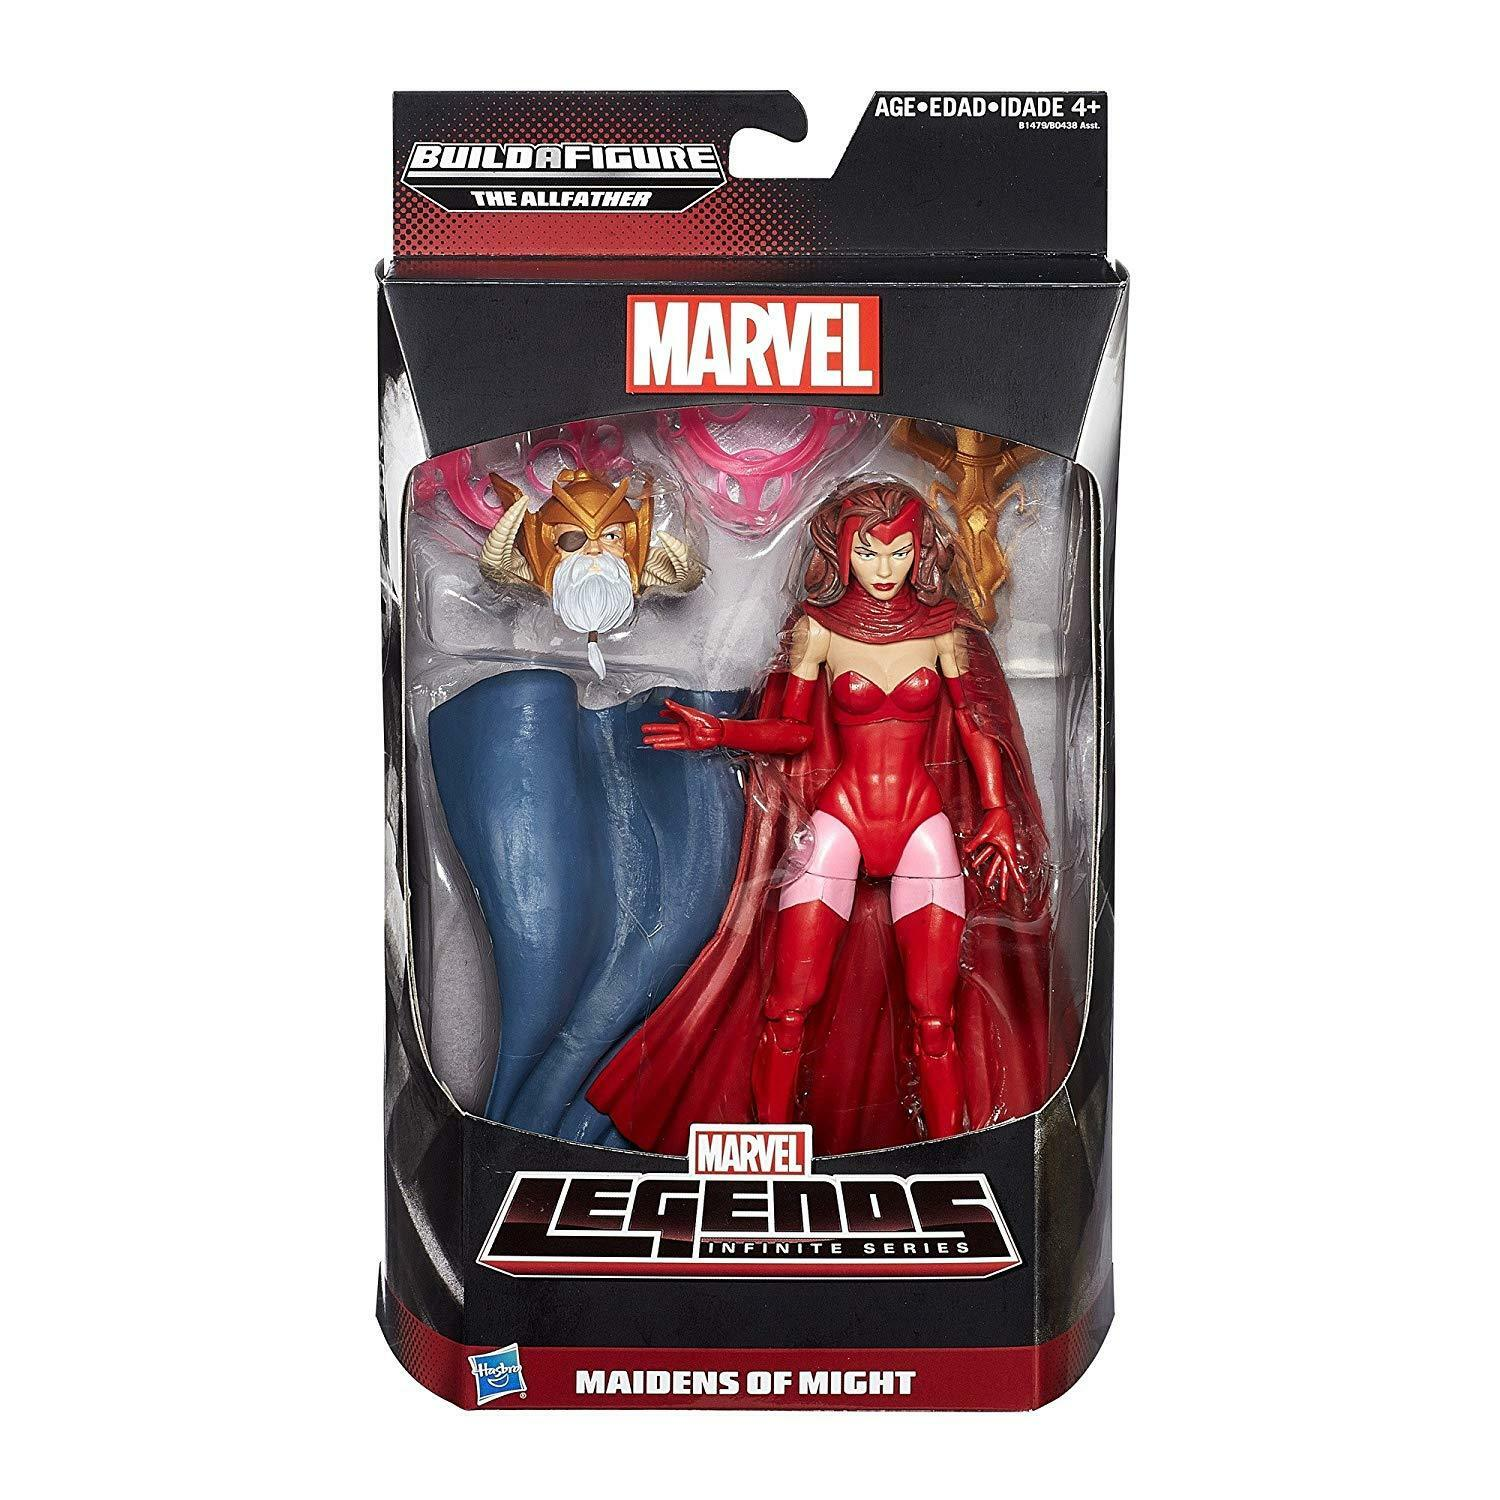 Marvel Legends Infinite Series 6 inch Maidens of Might Figure Scarlett Witch